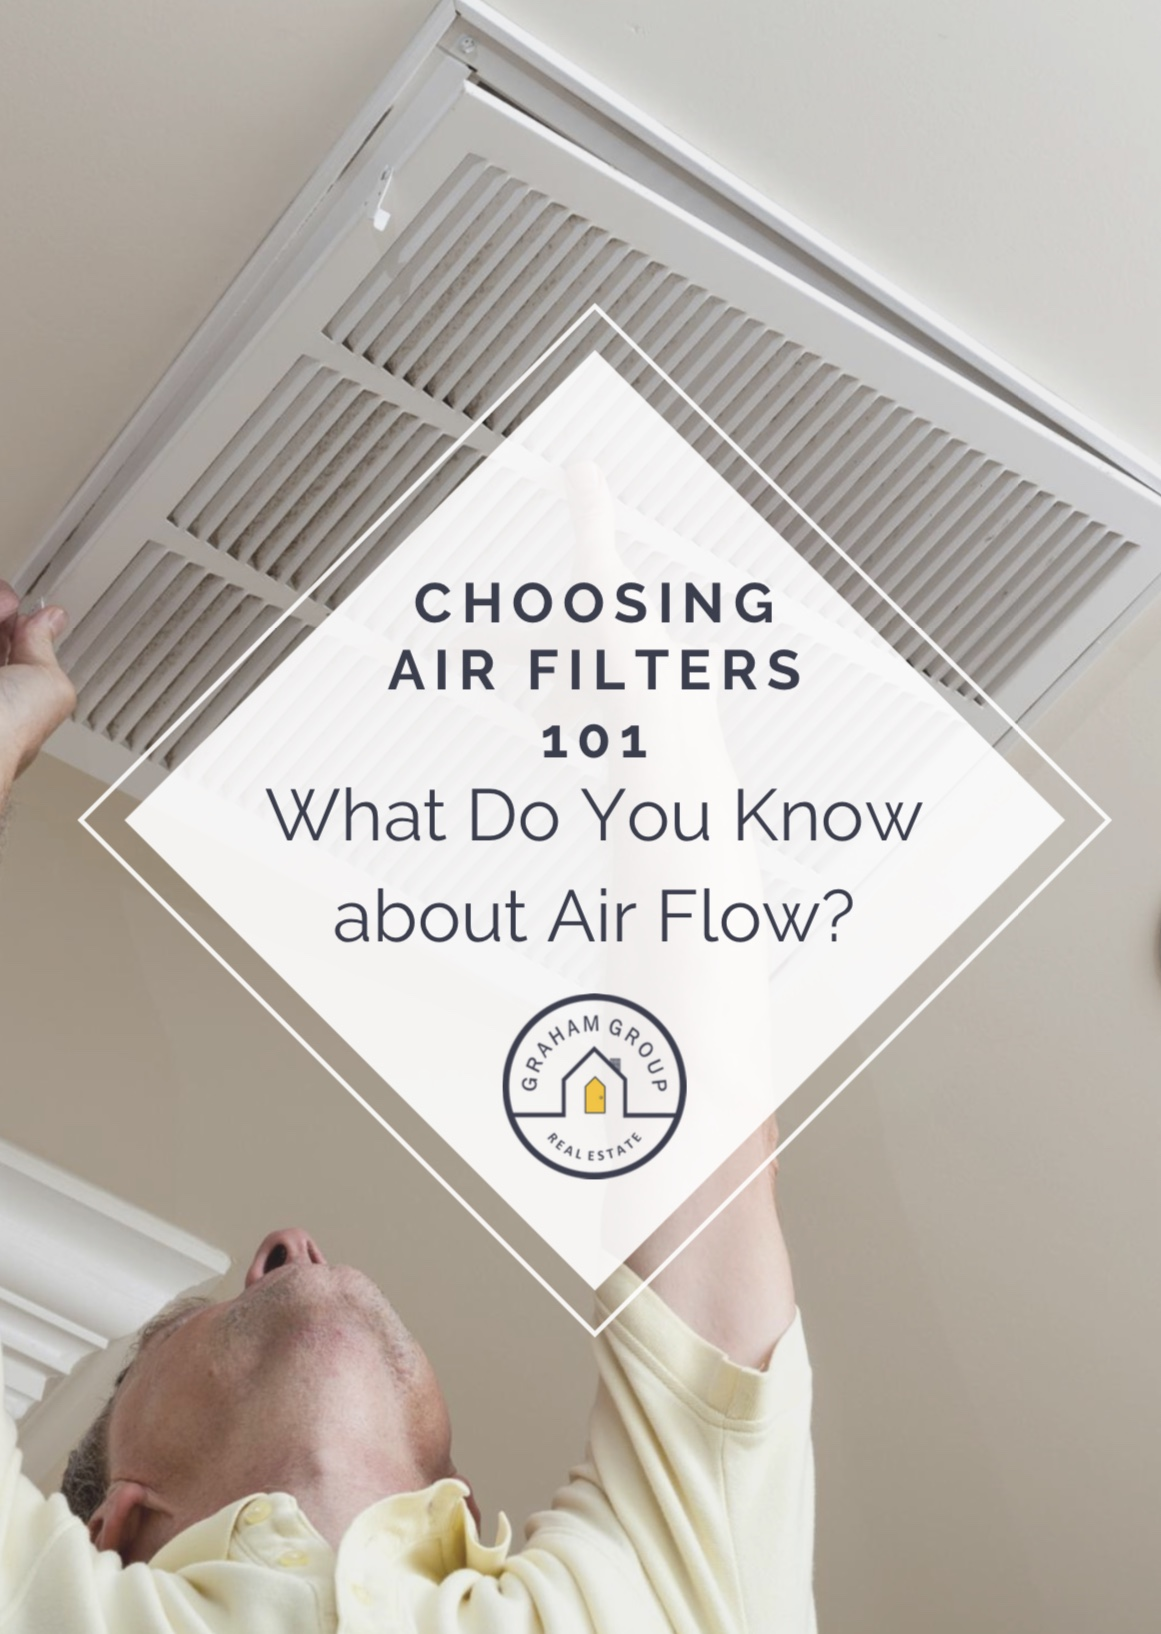 What Do You Know about Air Flow?